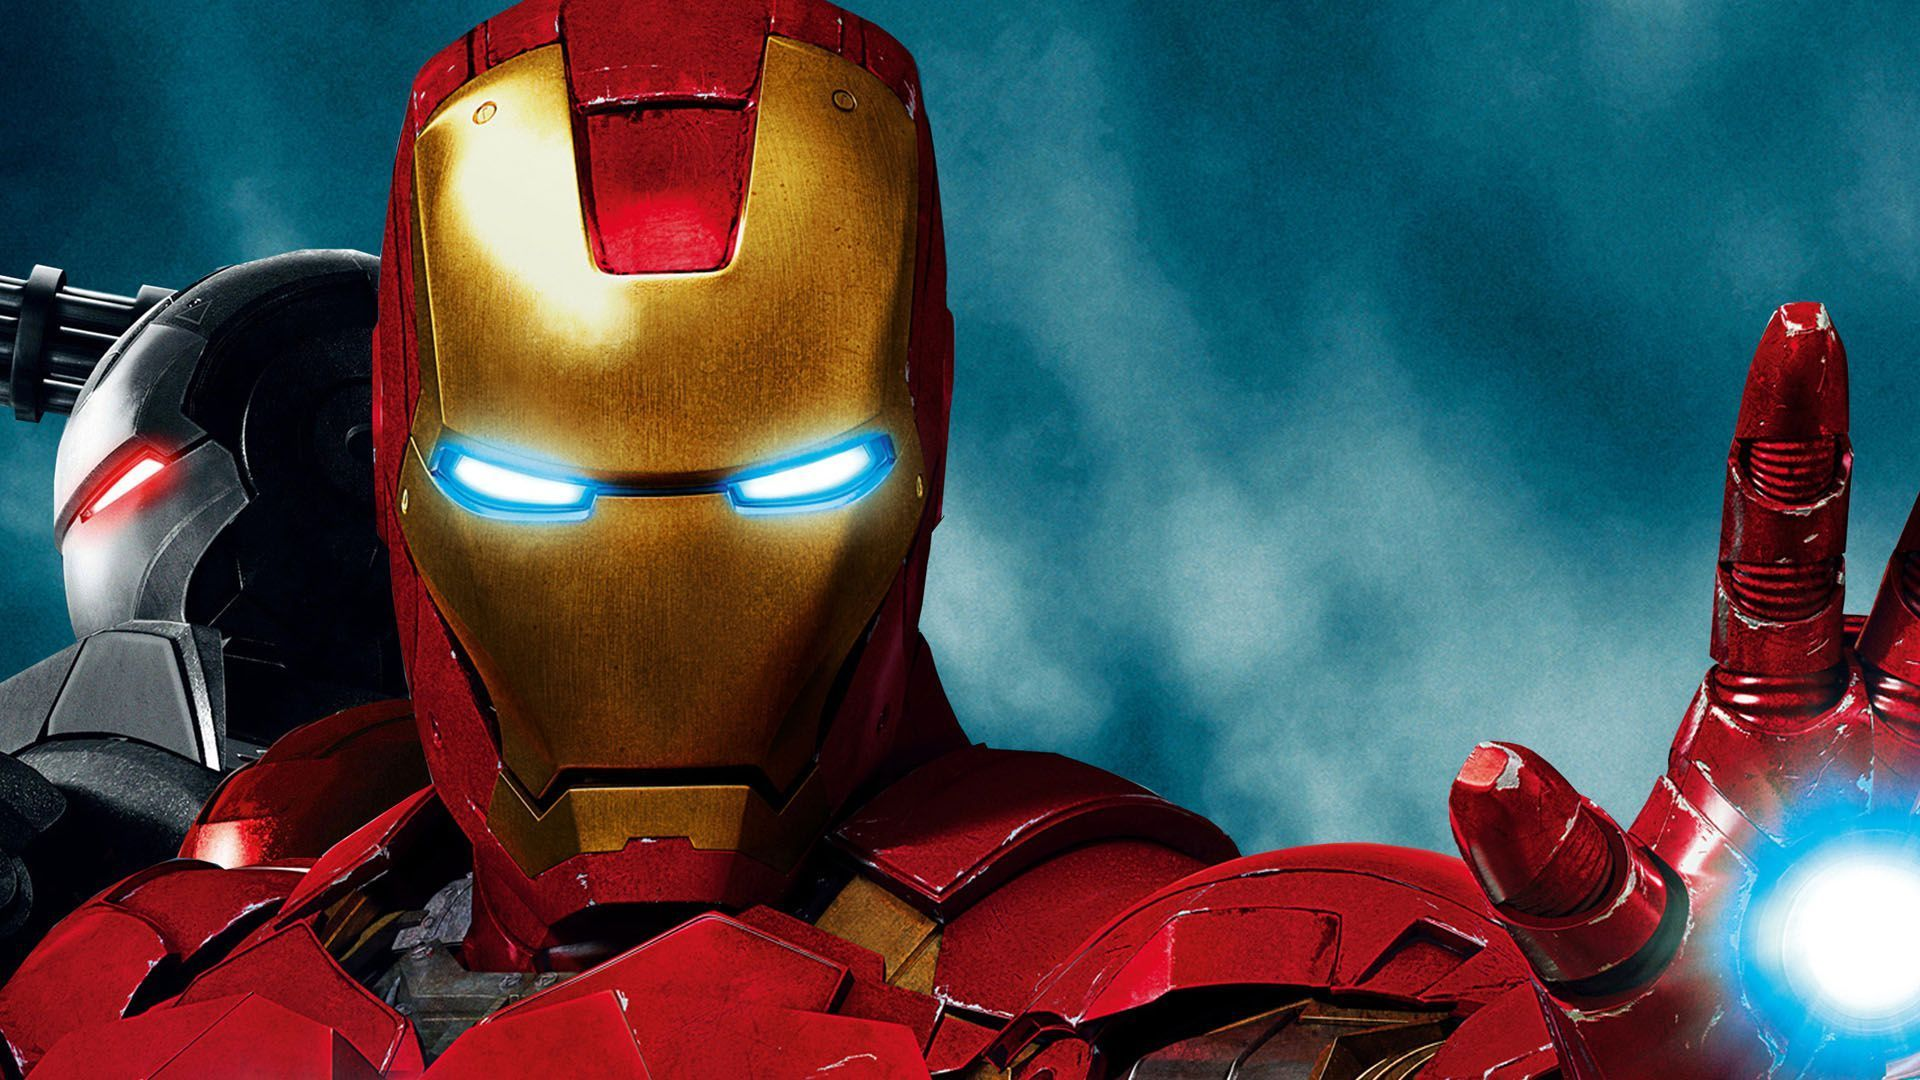 Iron Man 2 Wallpapers Hd Wallpaper Cave Epic Car Wallpapers